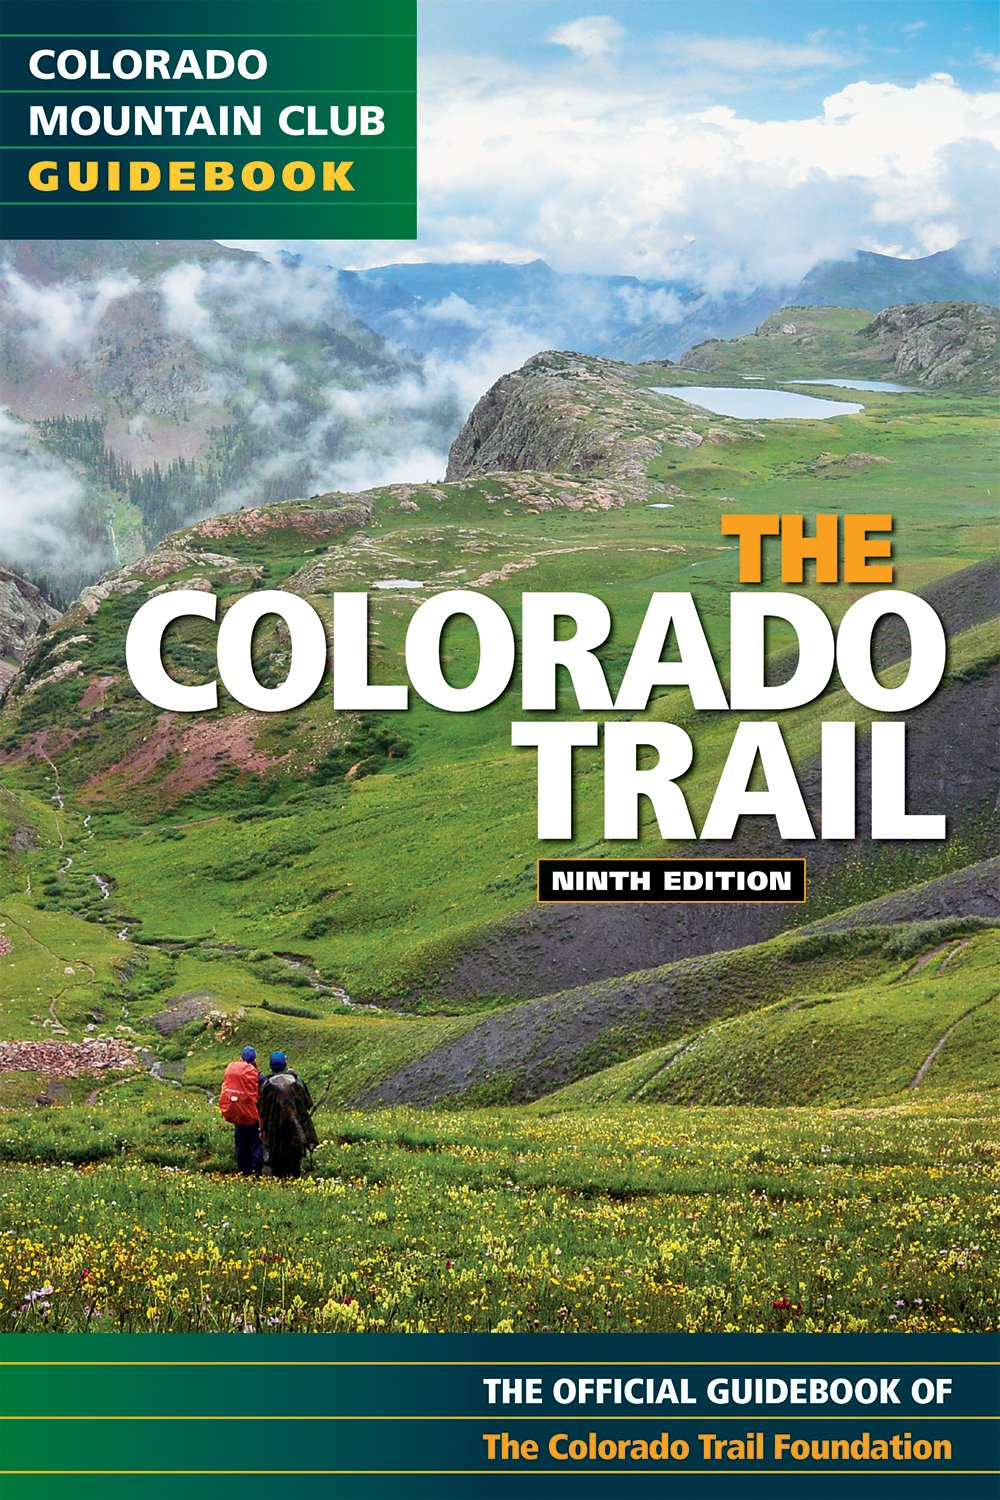 Colorado Trail Mountain Club Guidebooks product image